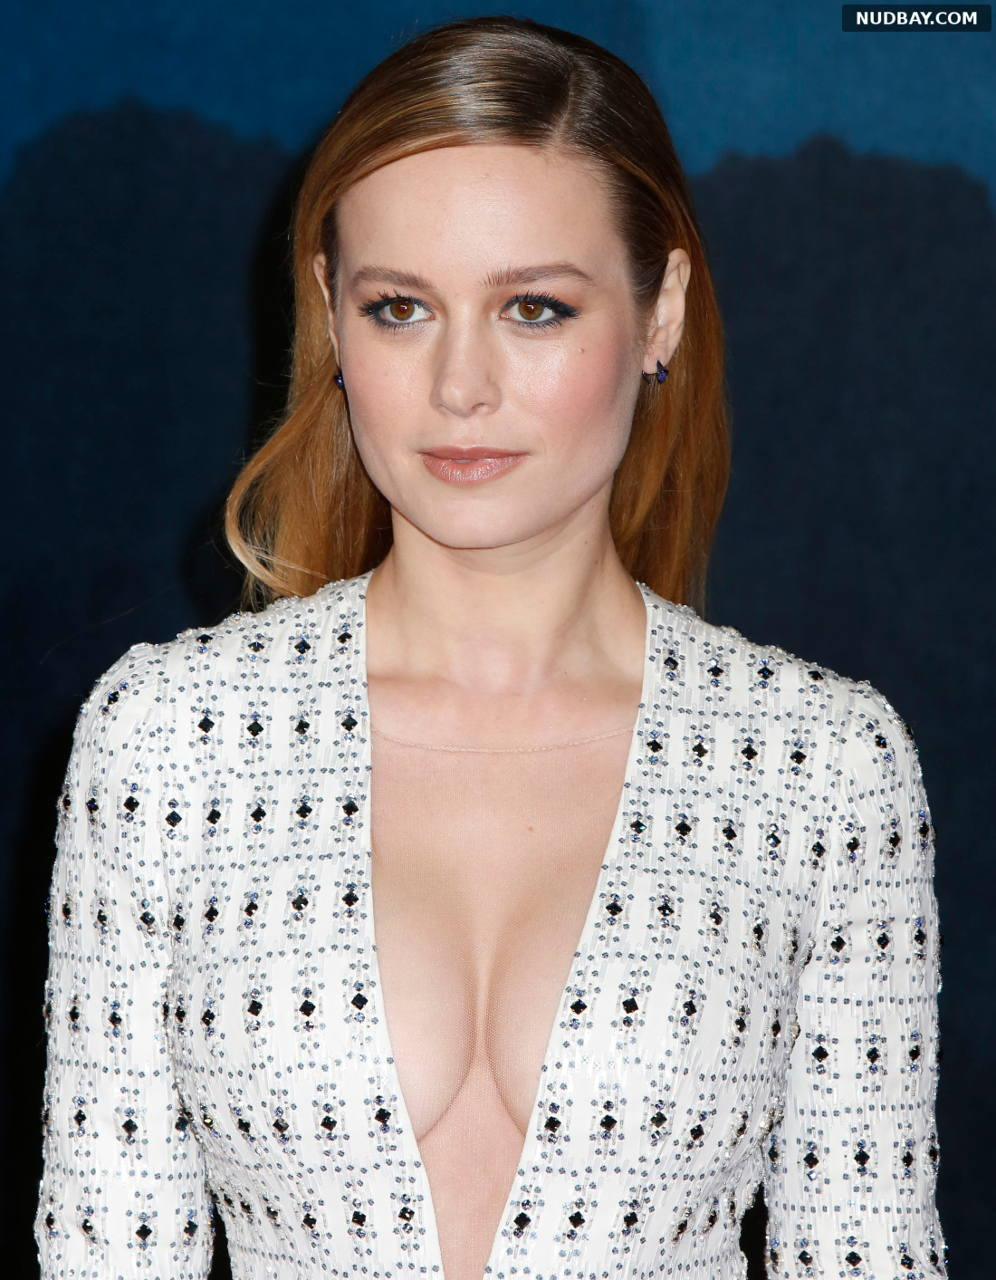 Brie Larson Cleavage at Kong: Skull Island premiere in London Feb 28 2017